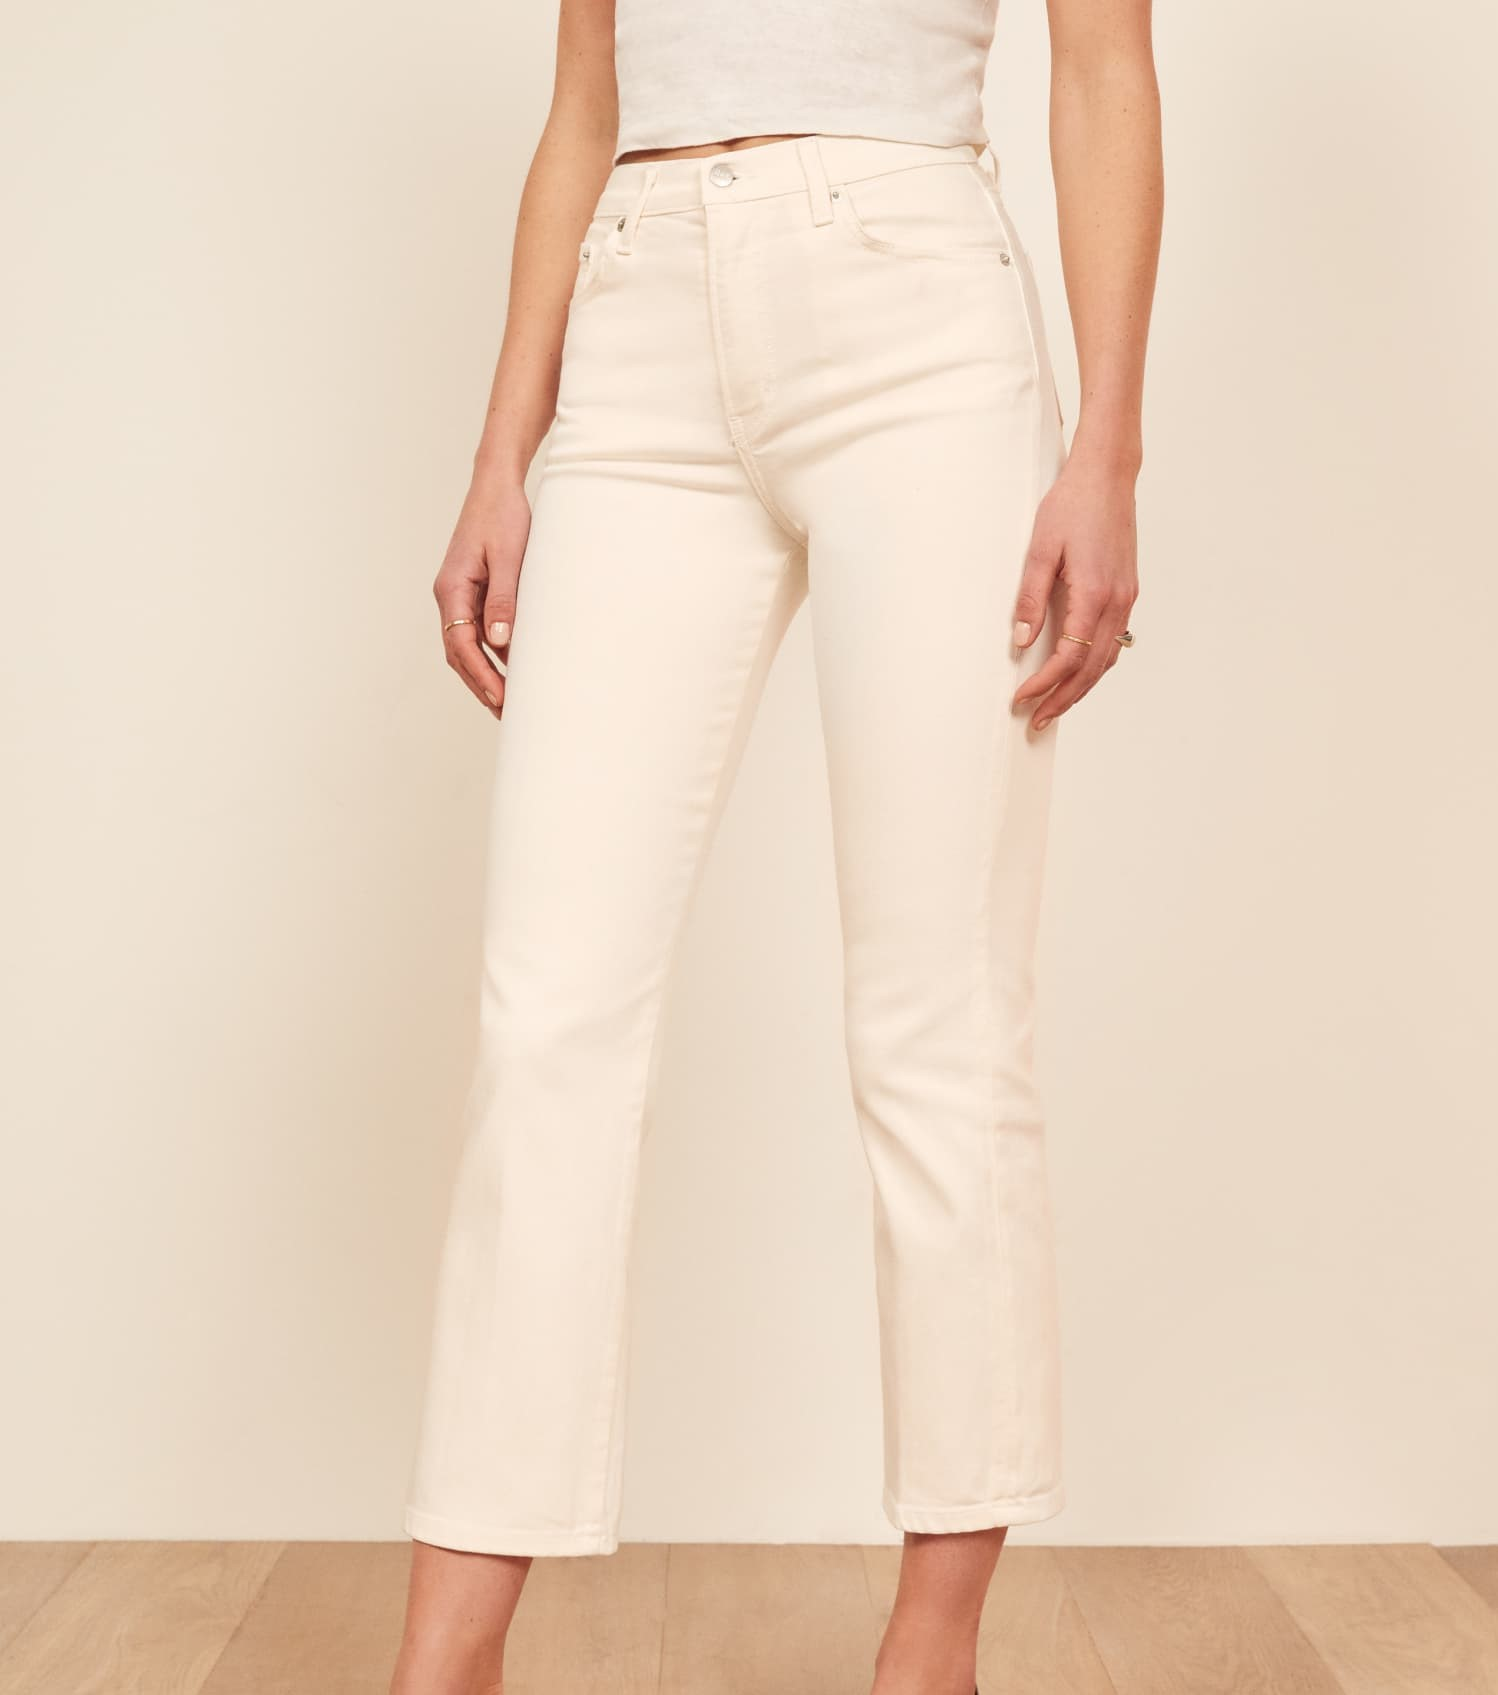 Reformation Liza High Waisted Crop